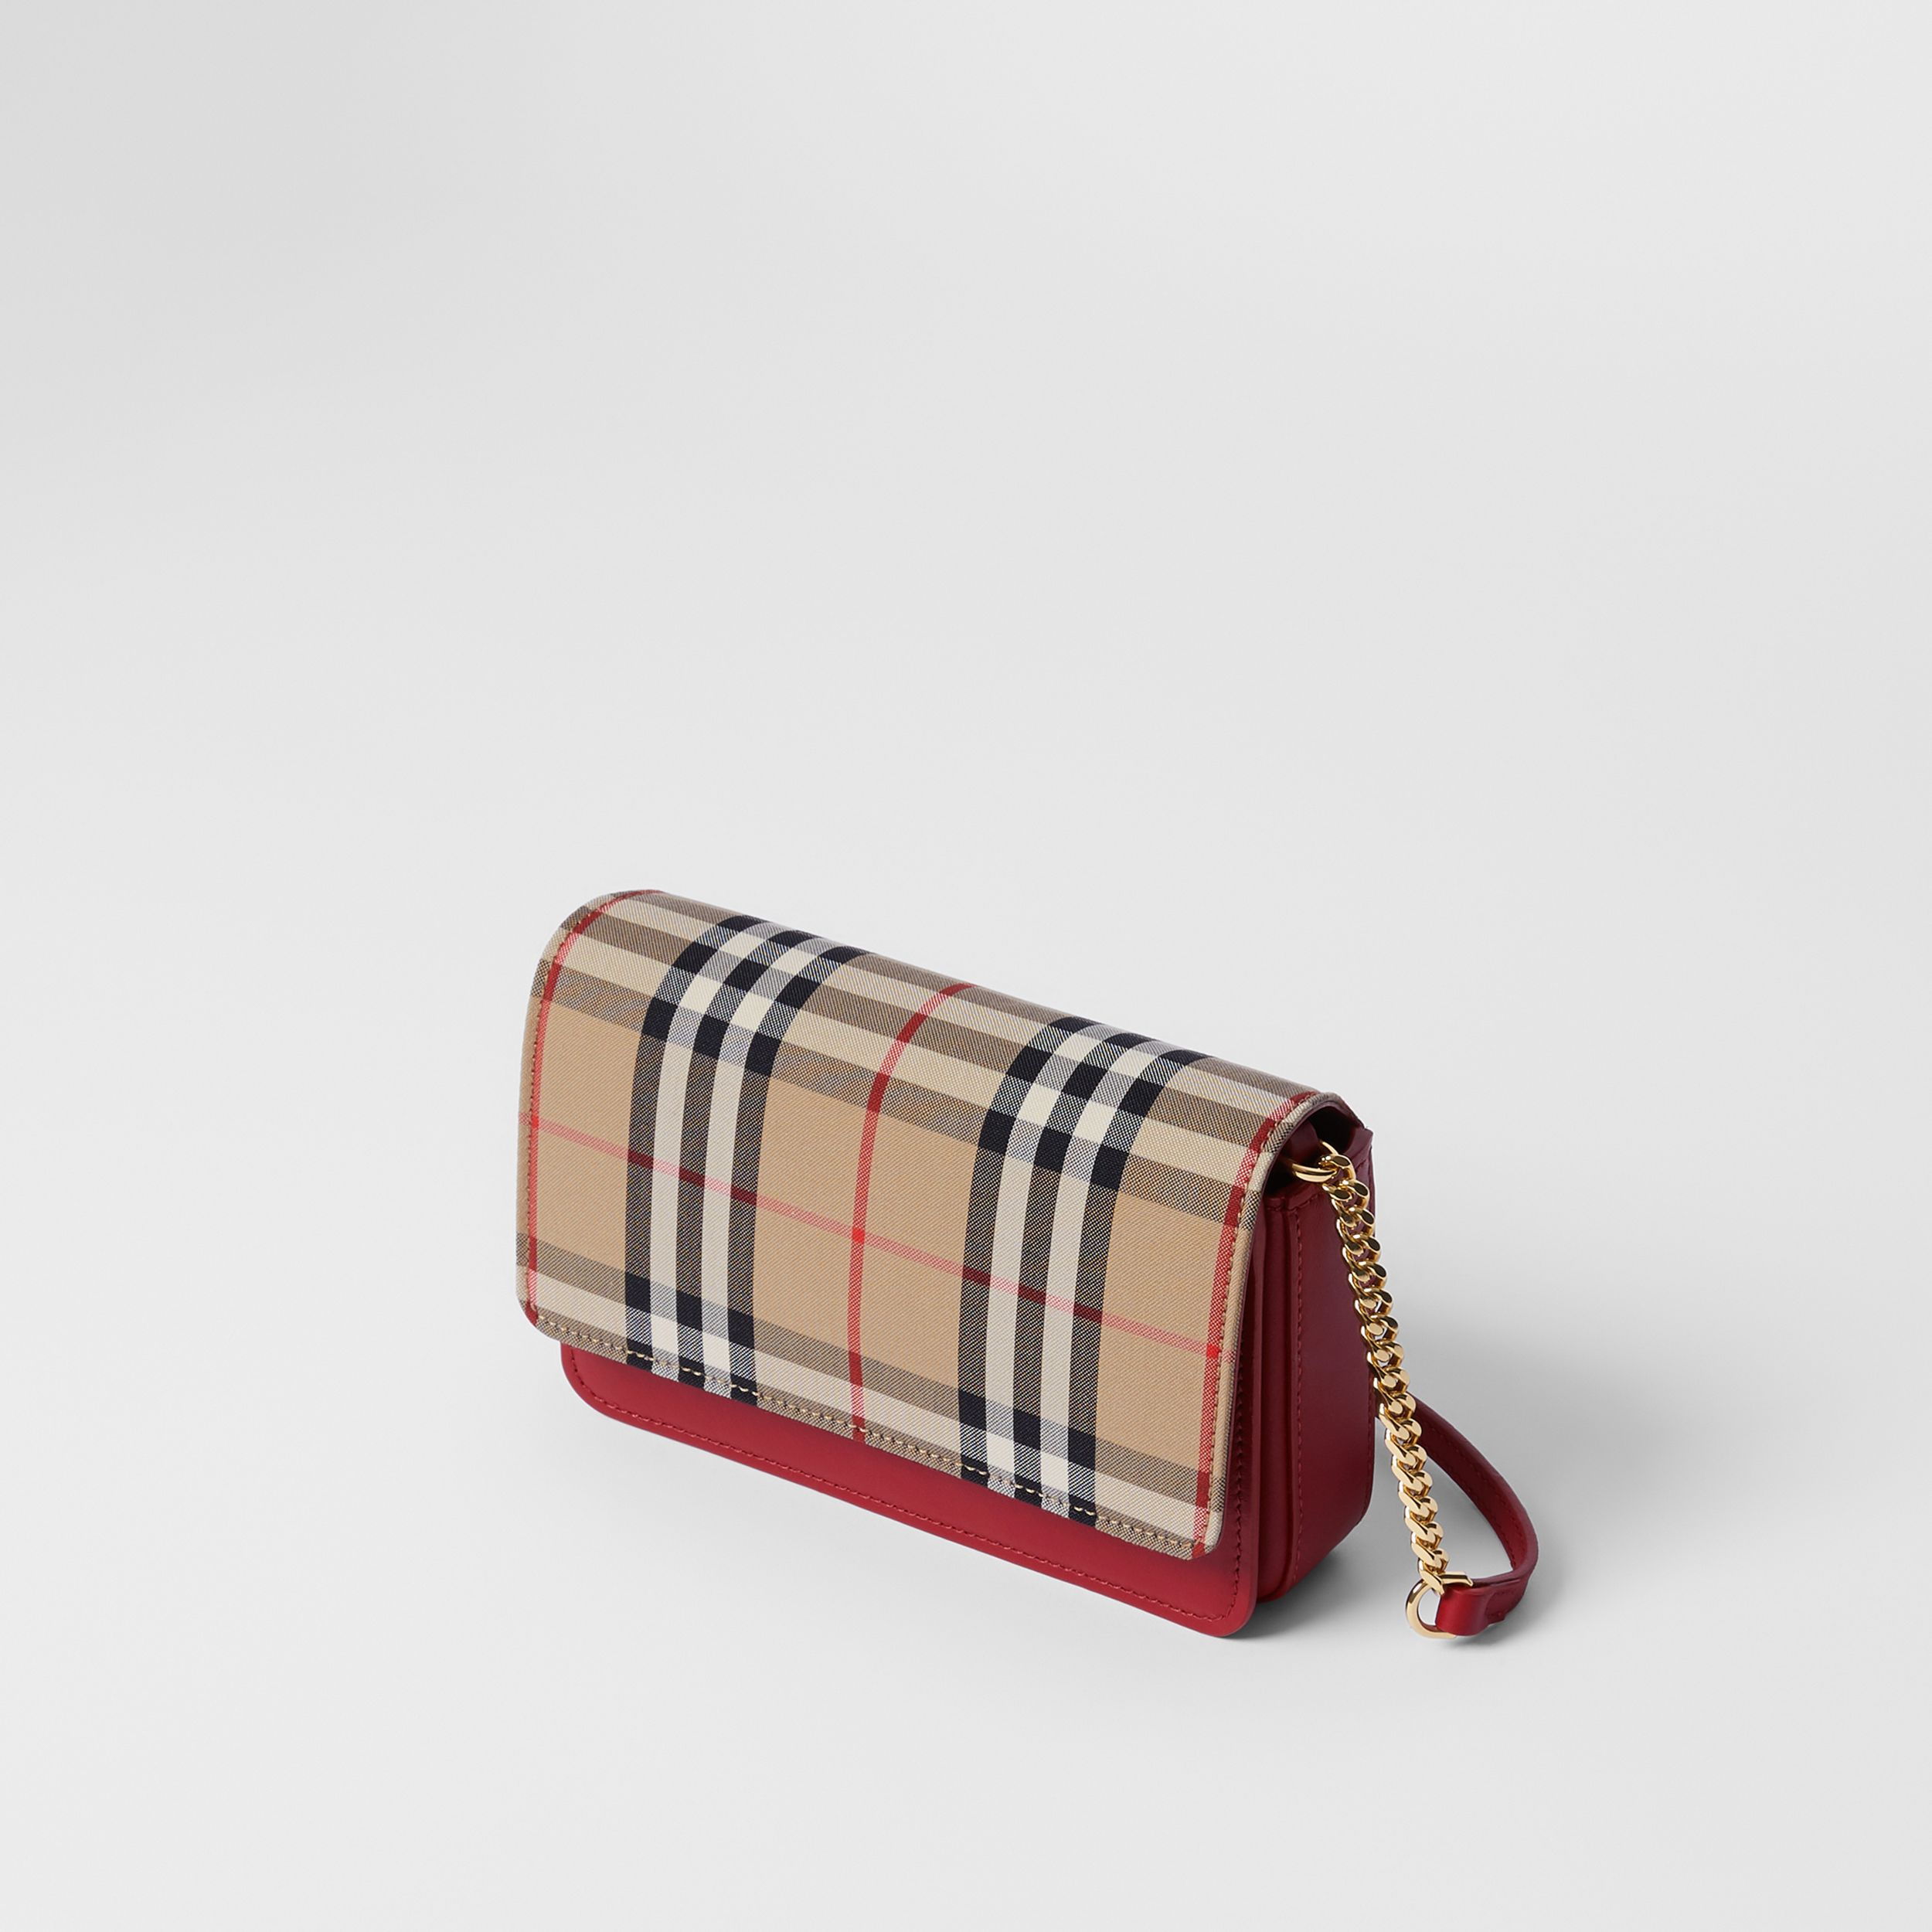 Vintage Check Canvas and Leather Bag in Parade Red - Women | Burberry - 4